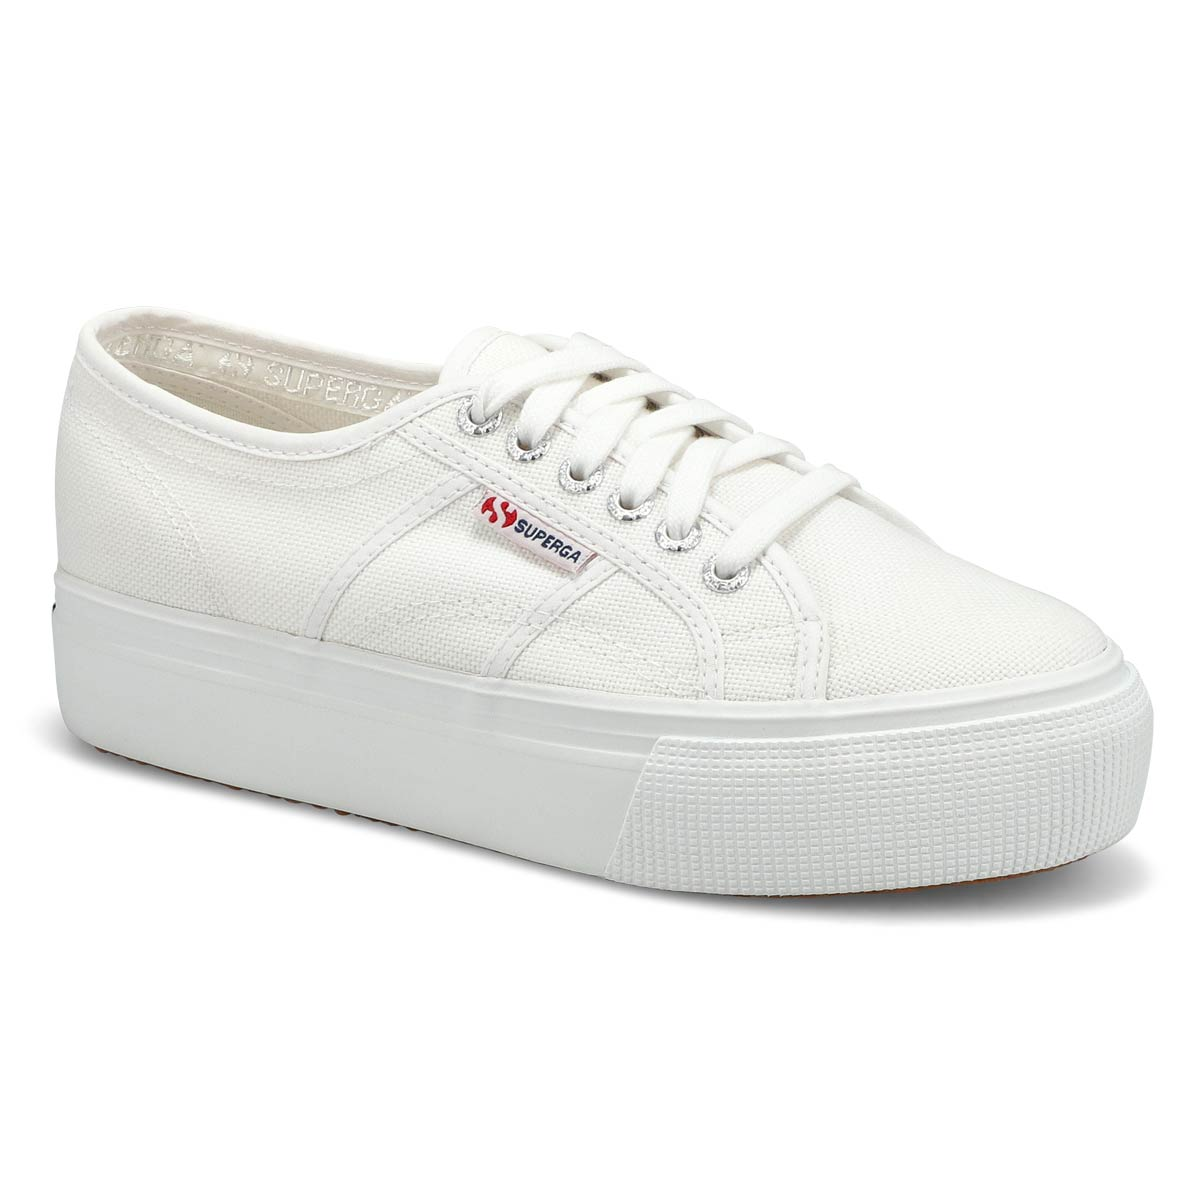 Lds Platform white canvas sneaker